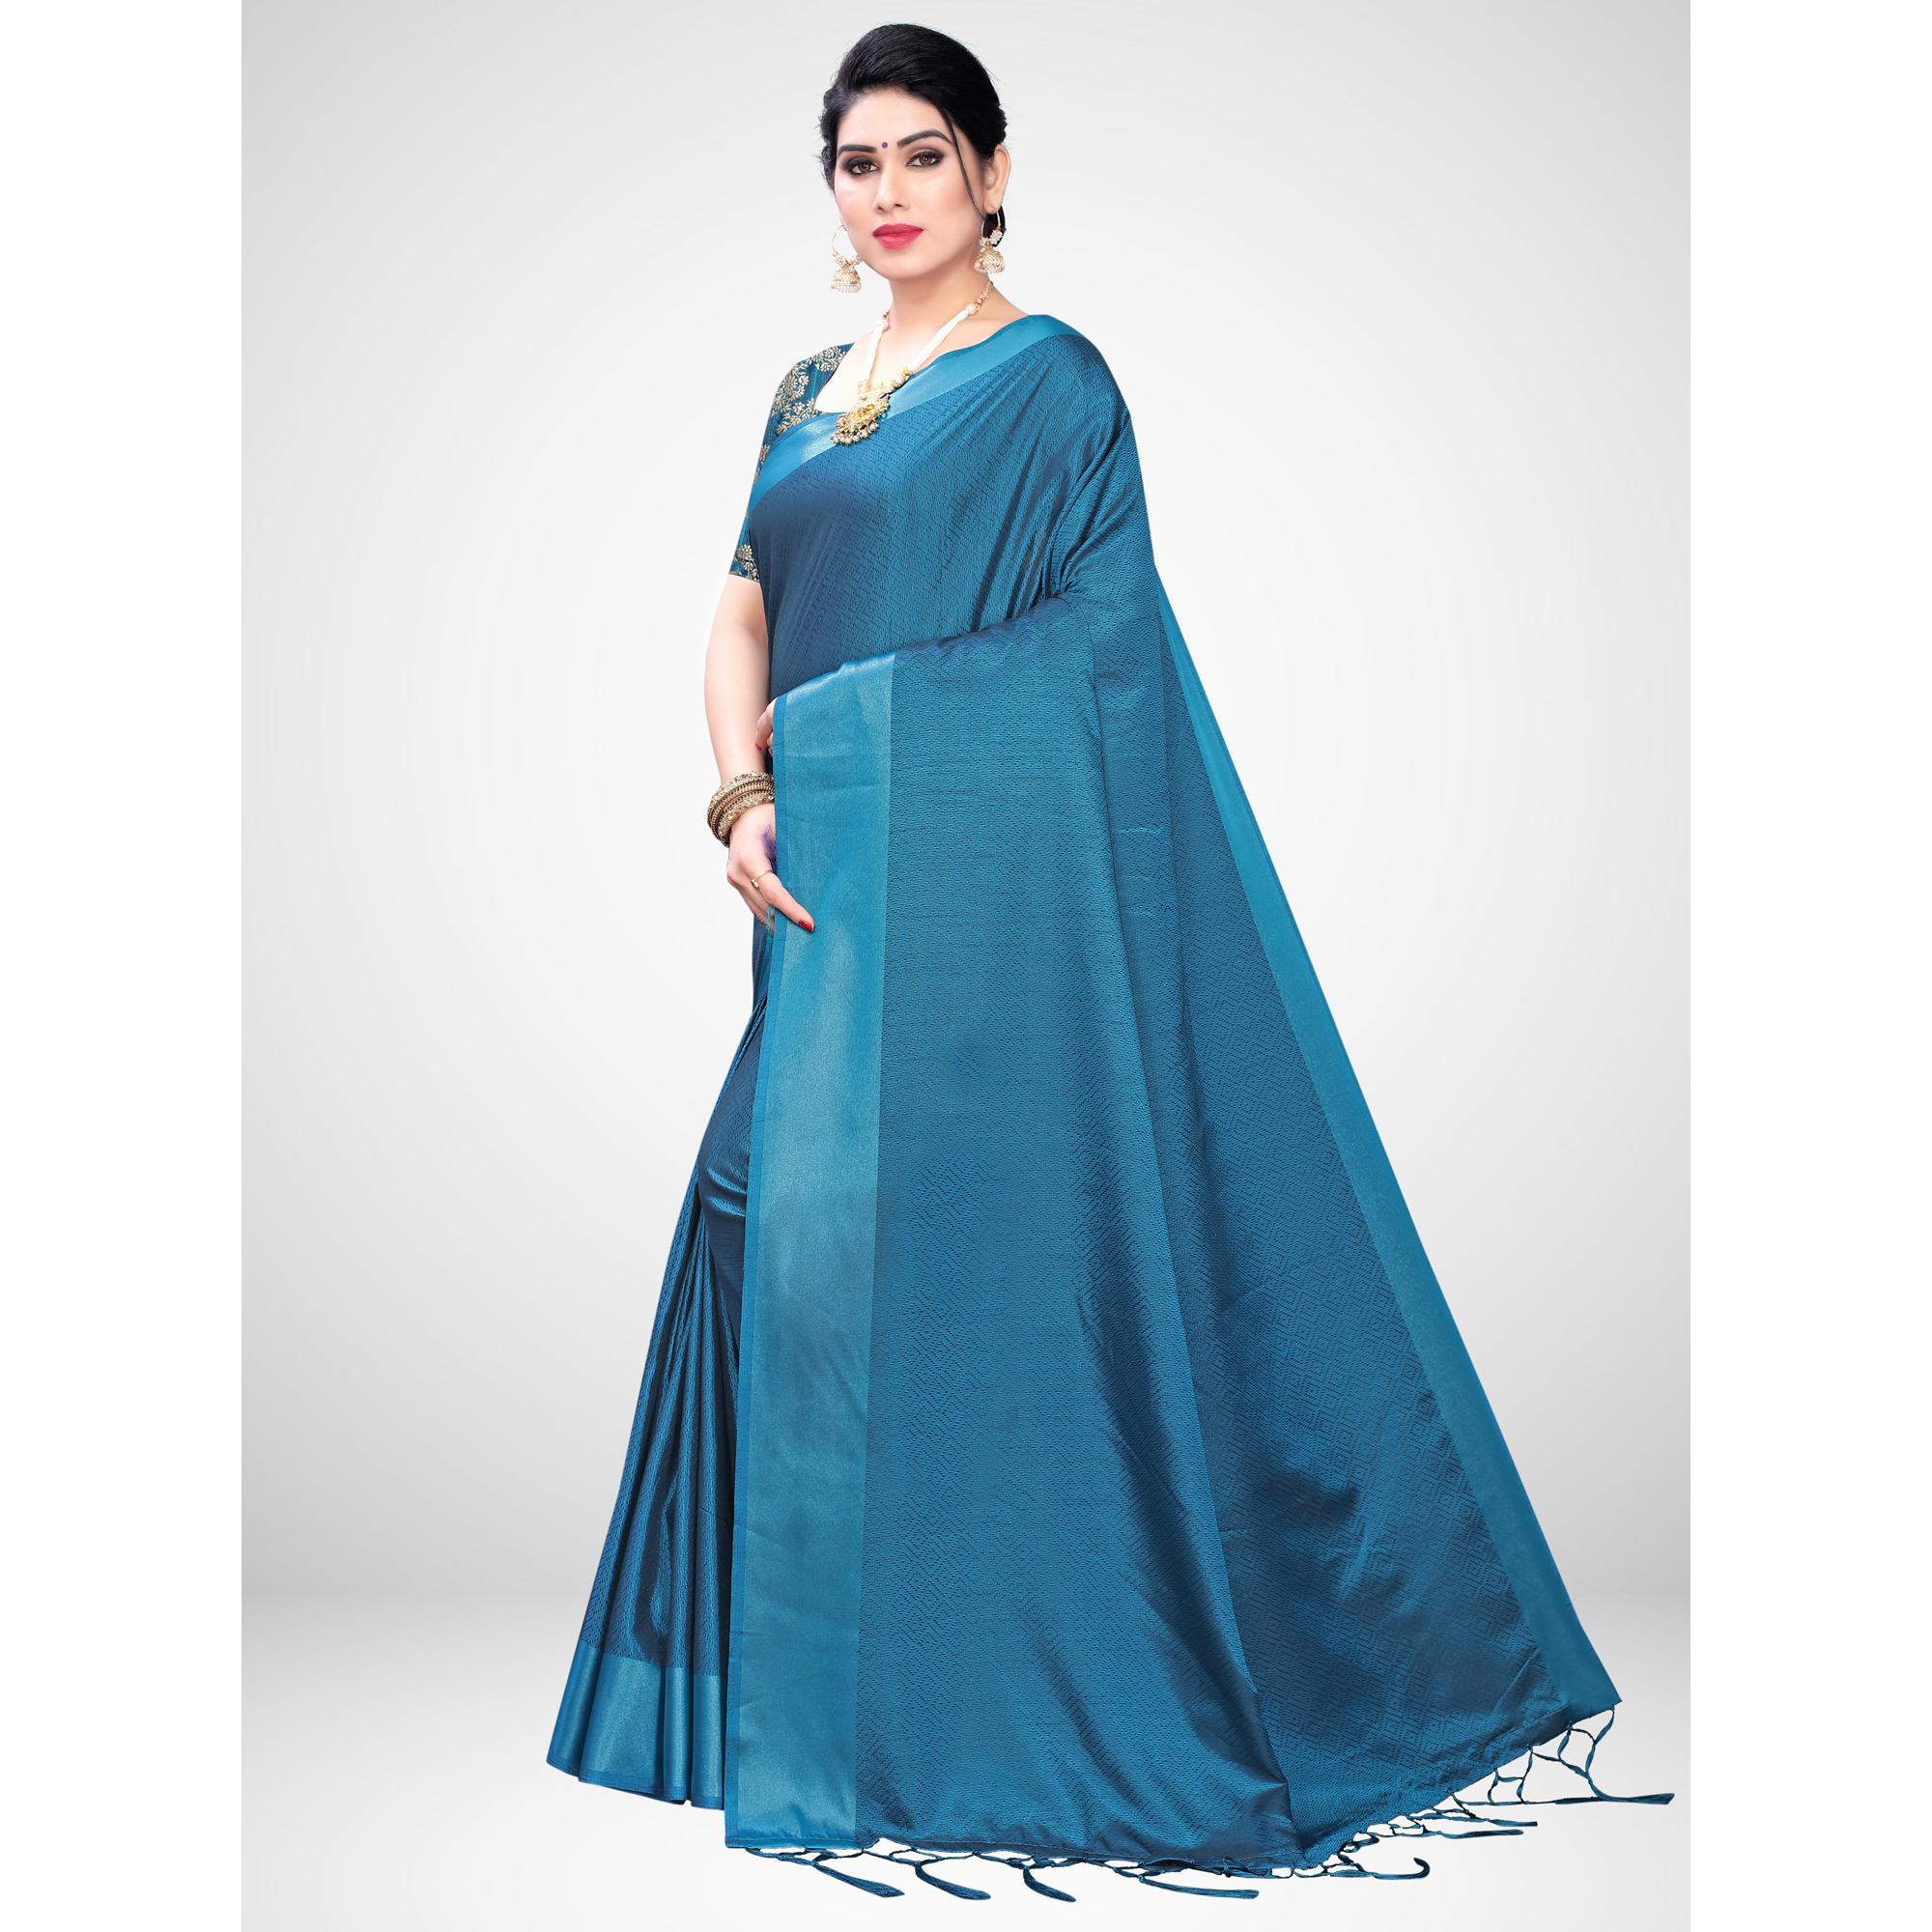 Gleaming Teal Blue Colored Festive Wear Woven Satin Saree